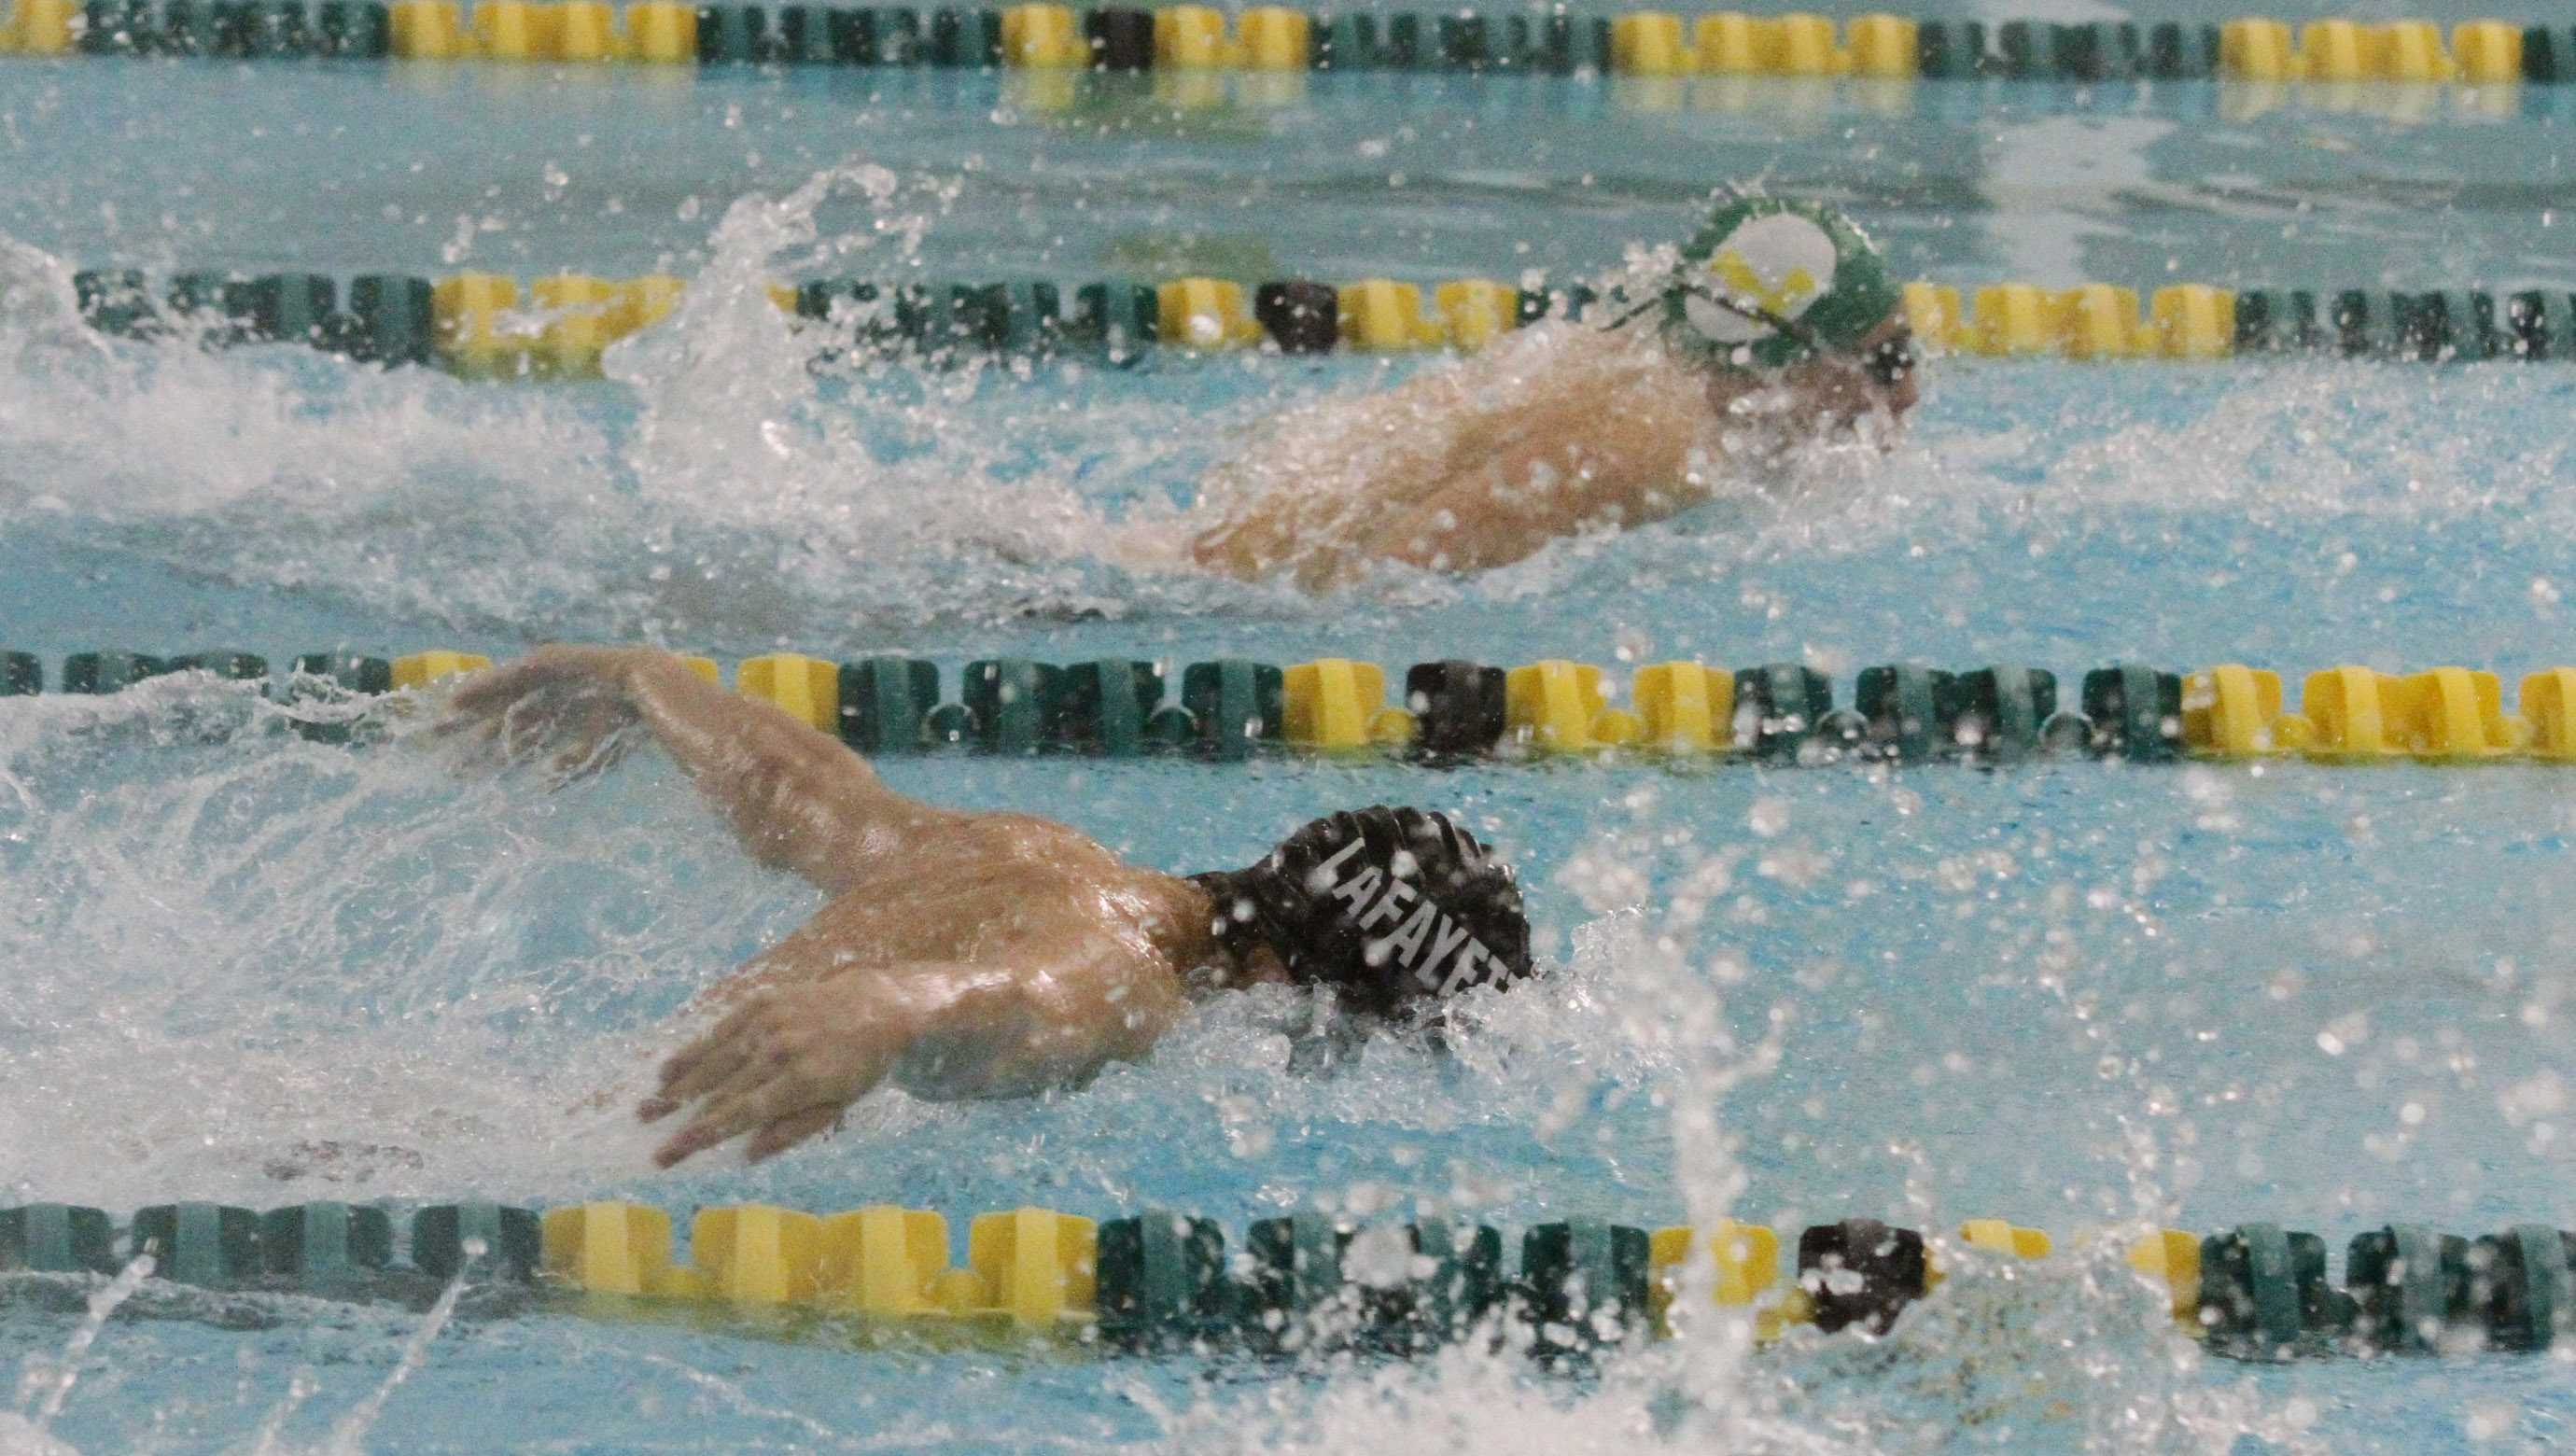 Lafayette takes on Lindbergh during a swim meet. The Lancers ended up losing that meet 111-76.